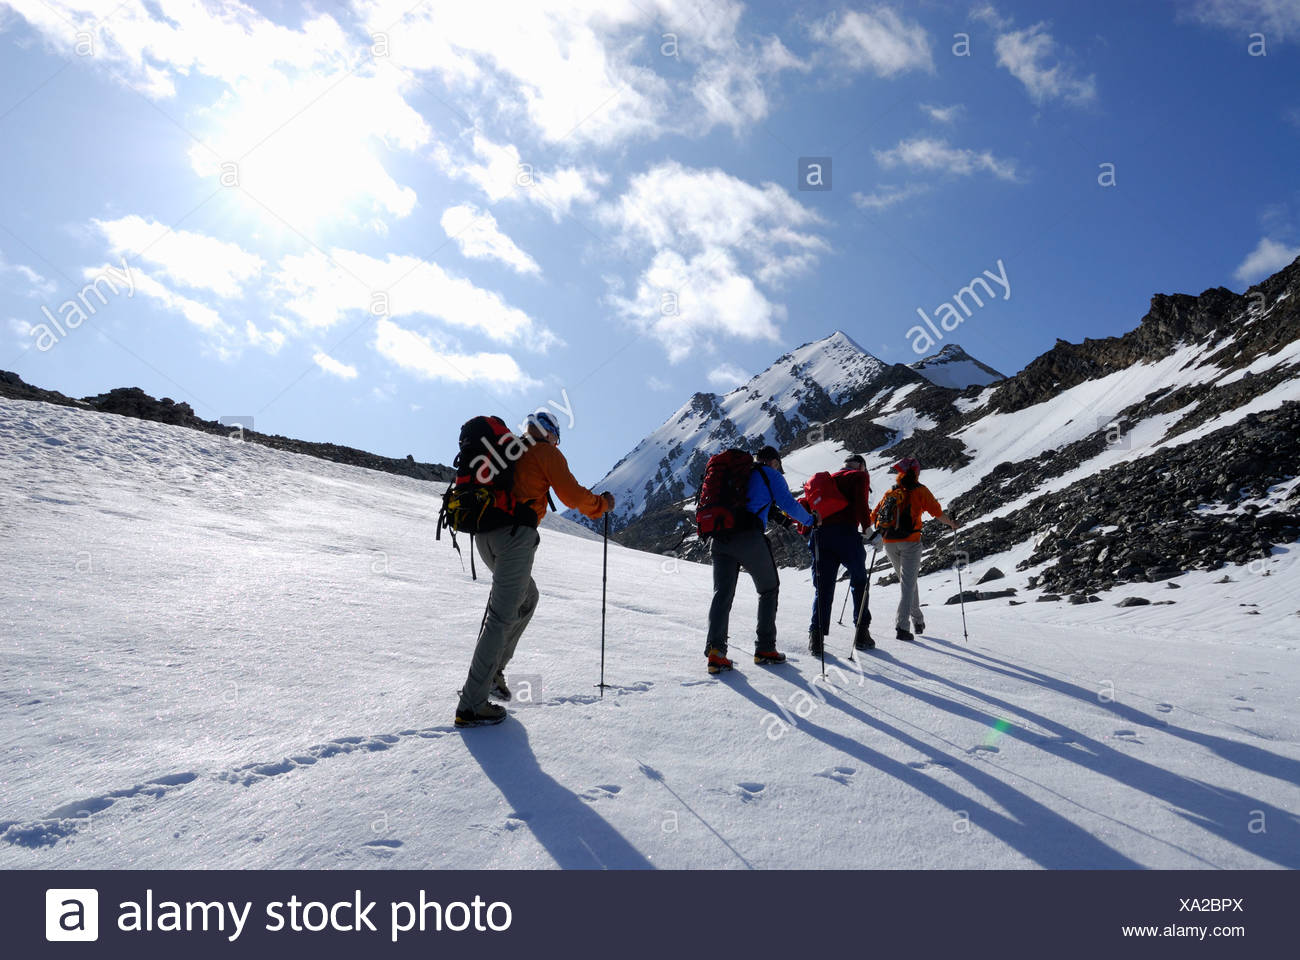 Four mountain hikers ascending to mount Hochfeiler, Zillertal Alps, South Tyrol, Italy Stock Photo